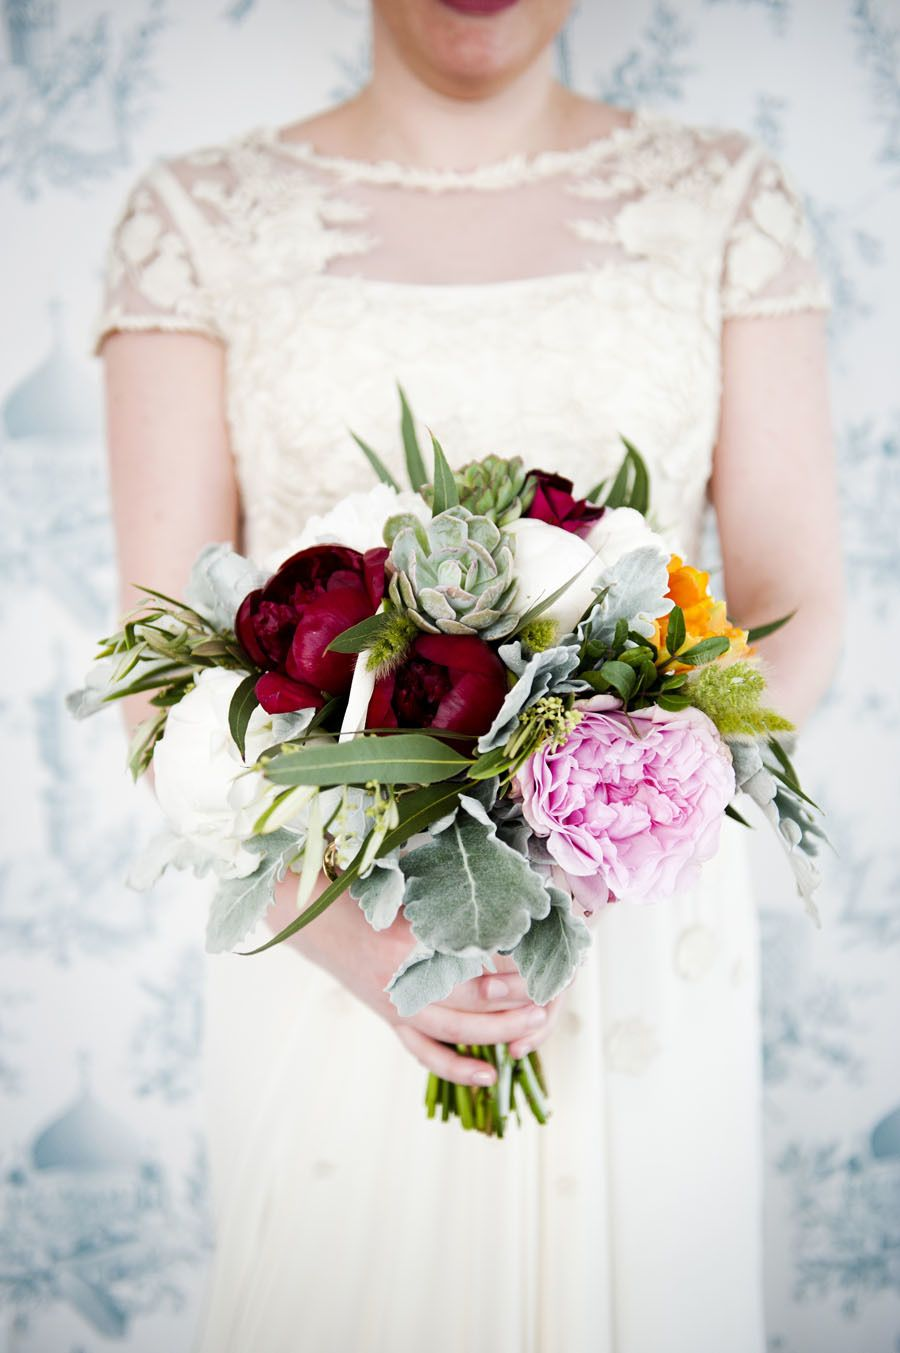 Textured peony and succulent bouquet. Photography: - khakibedfordphoto.com/